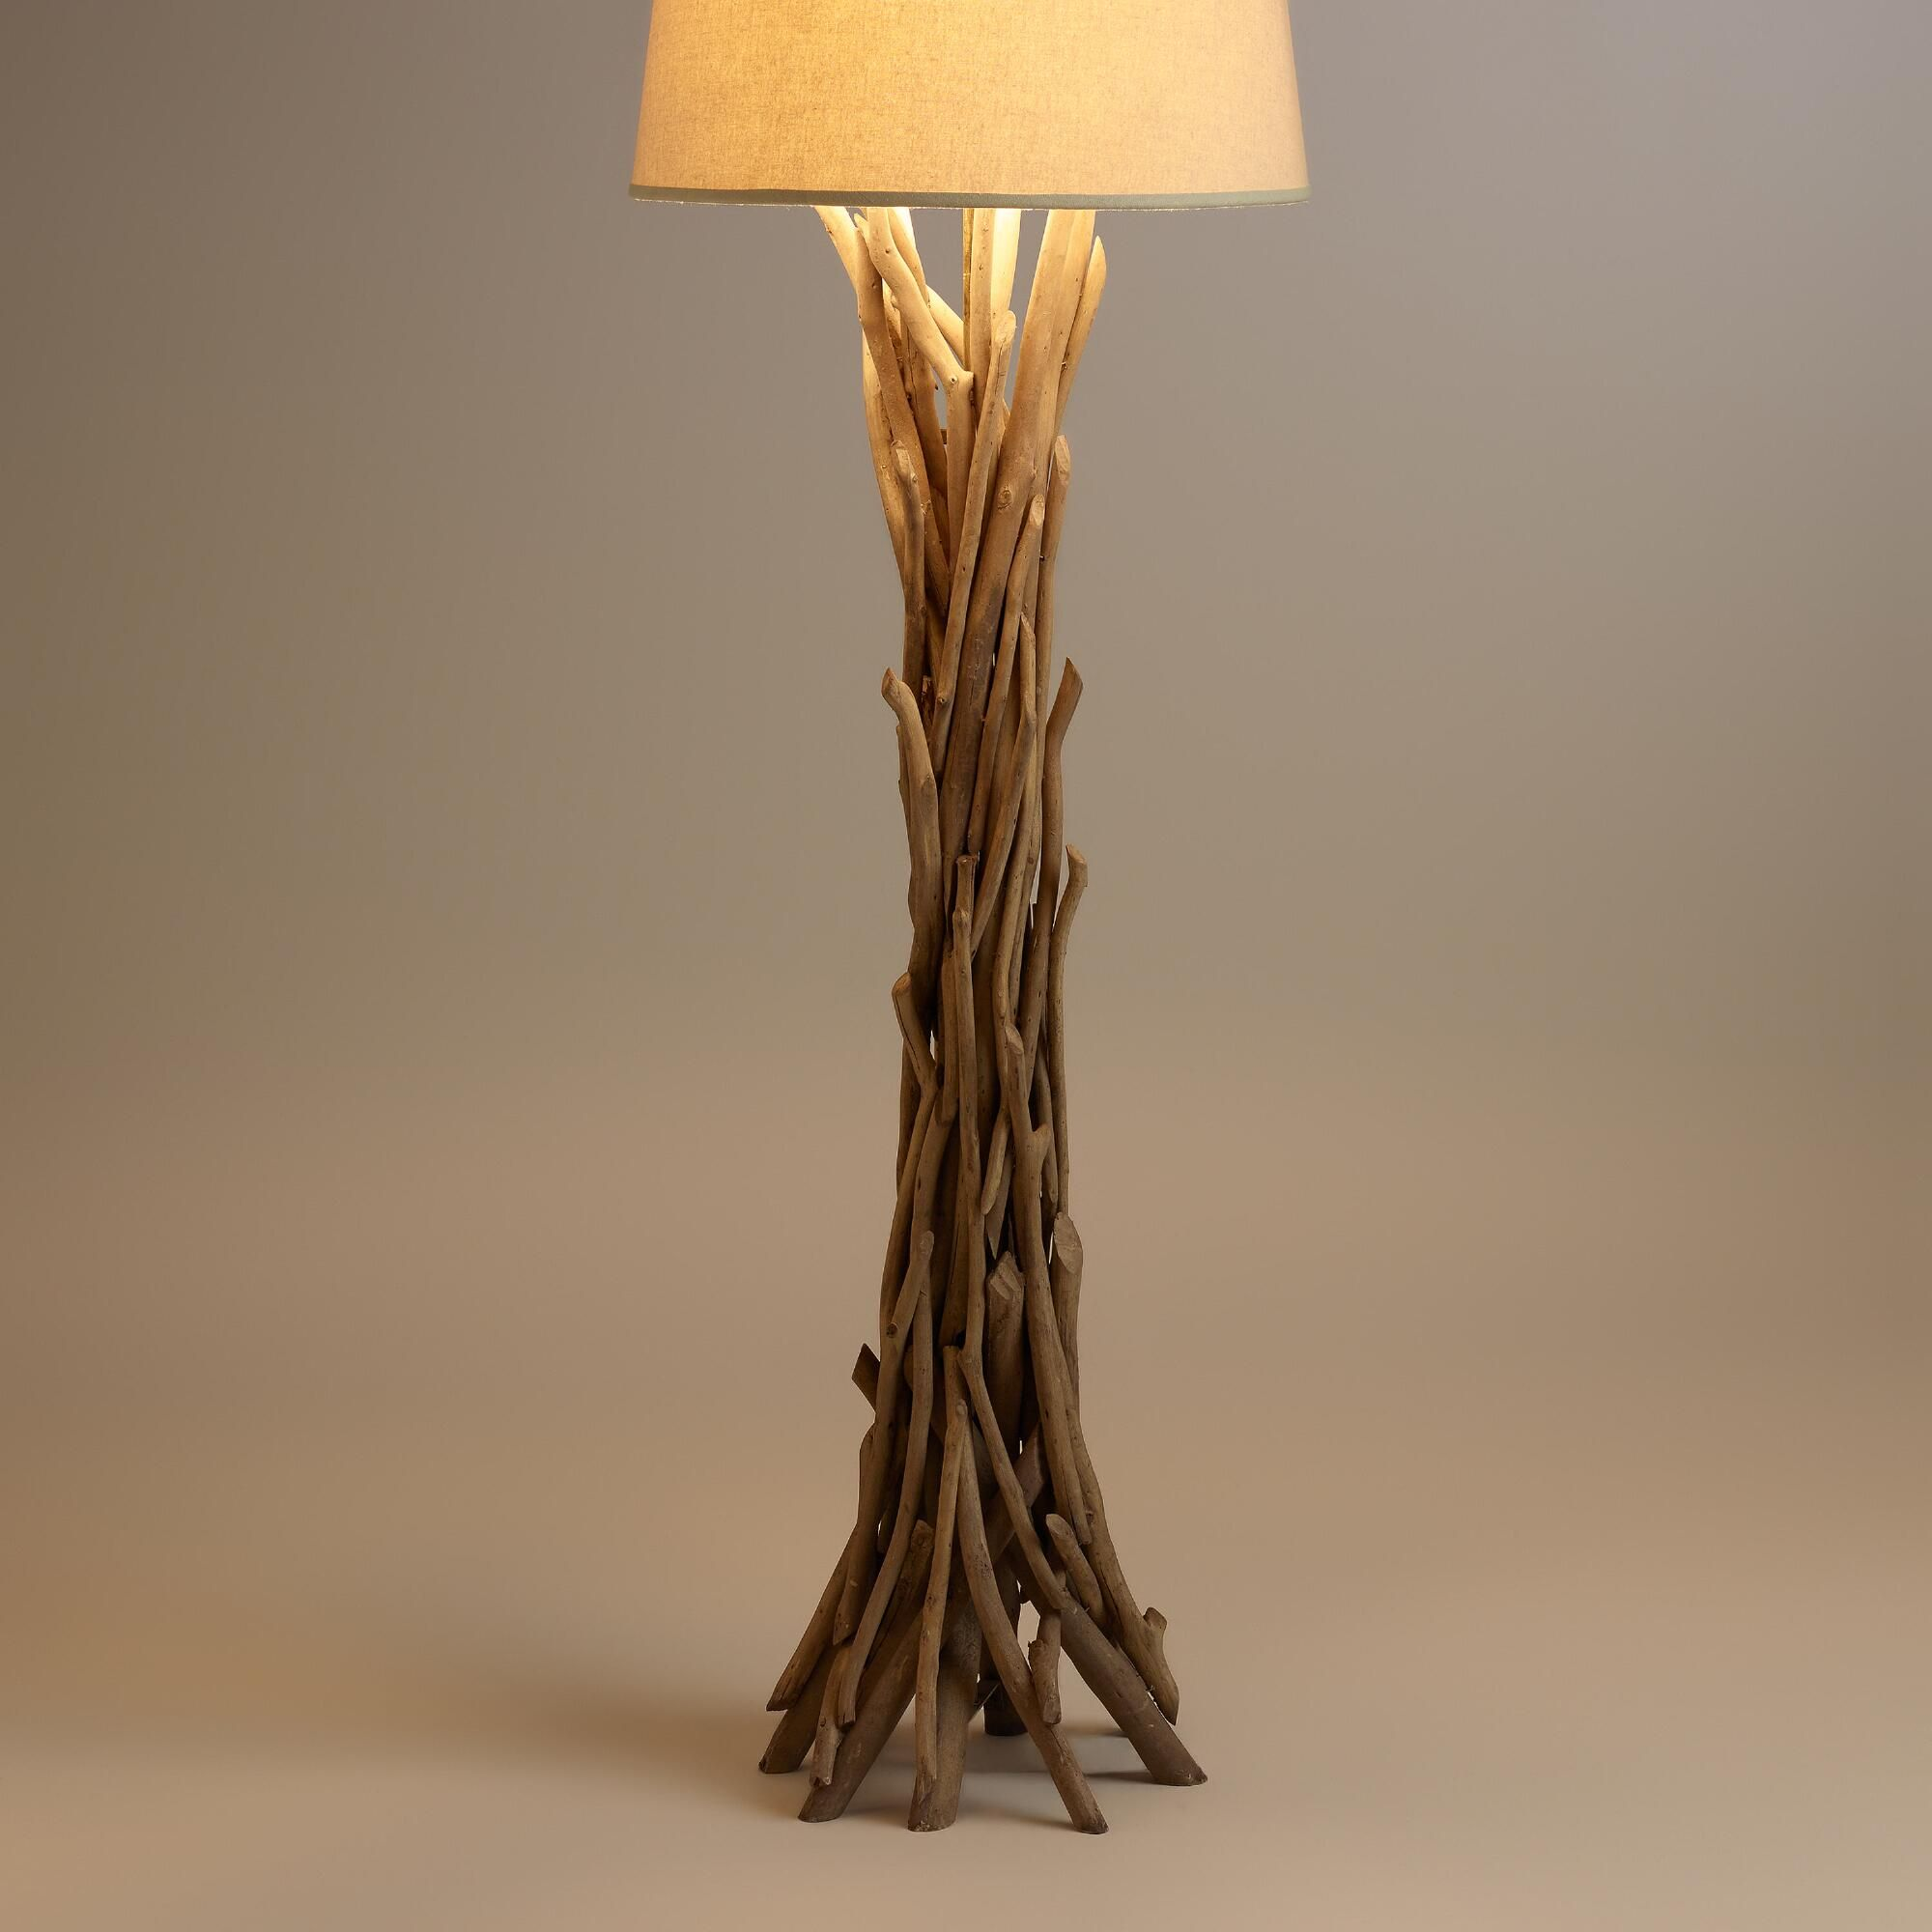 brushed designsadrift hand by custom base michael lamp floor steel driftwood made with